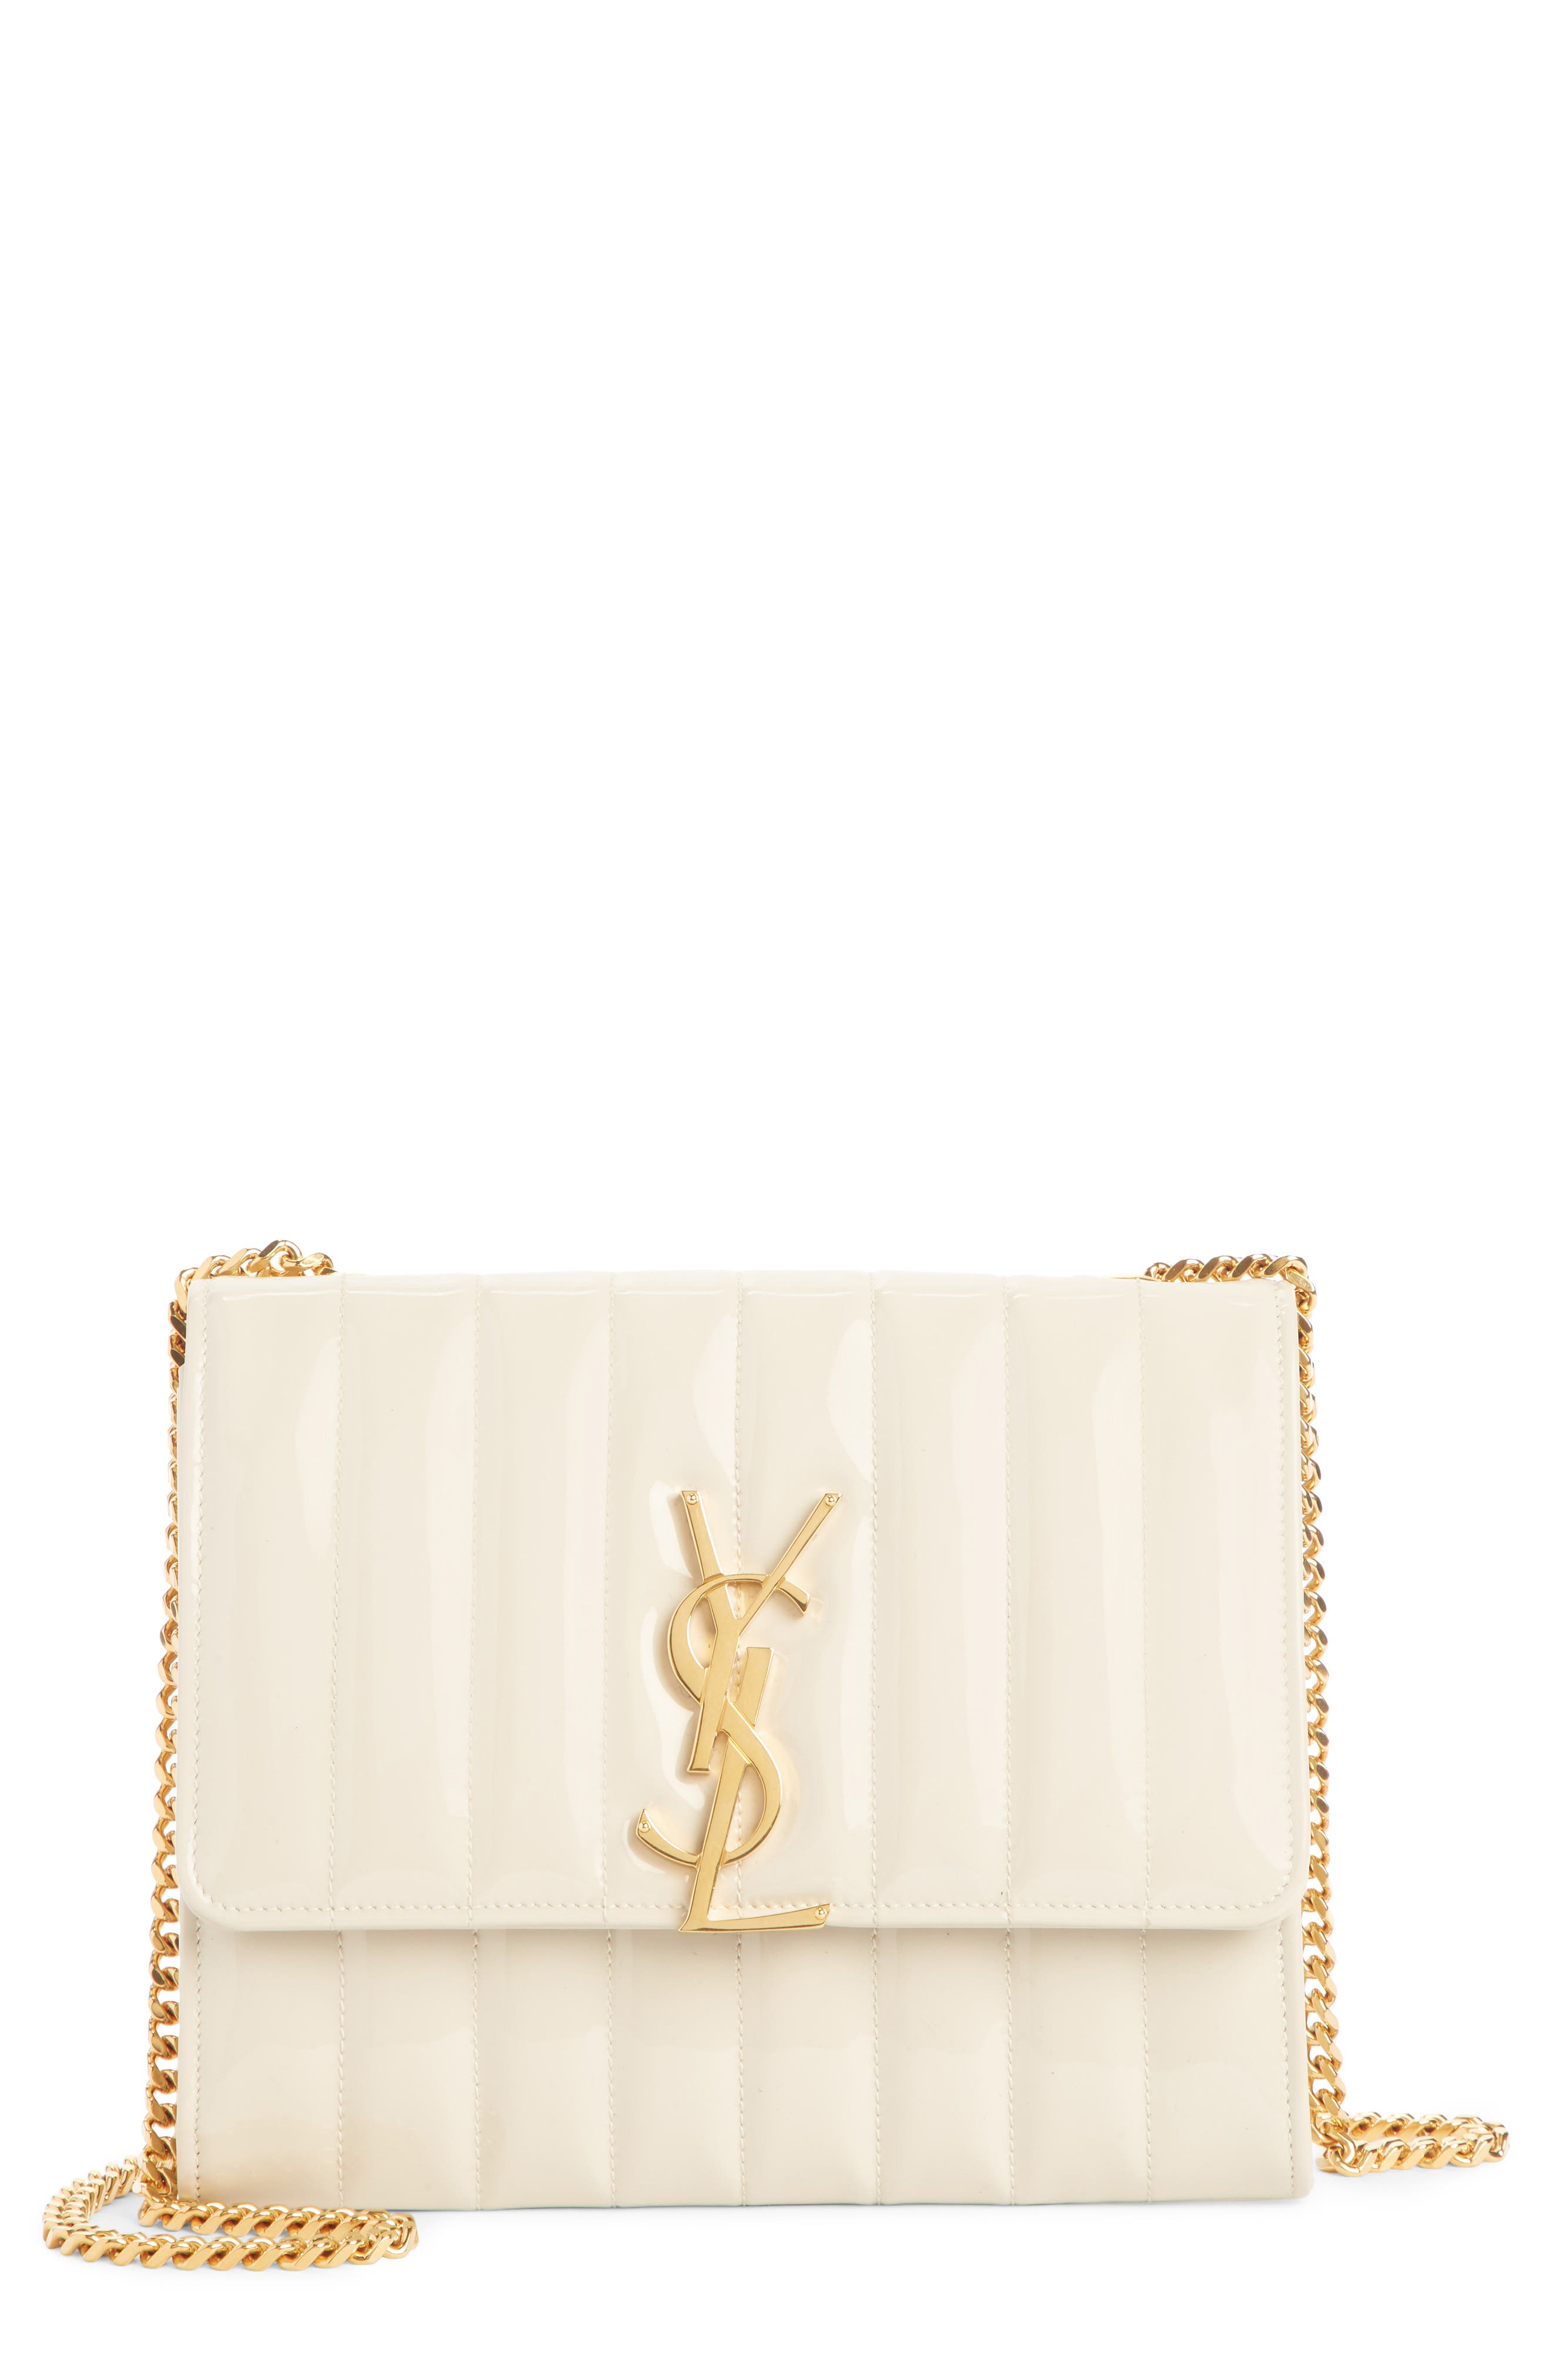 SAINT LAURENT Vicky Patent Leather Wallet on a Chain, Main, color, CREMA SOFT